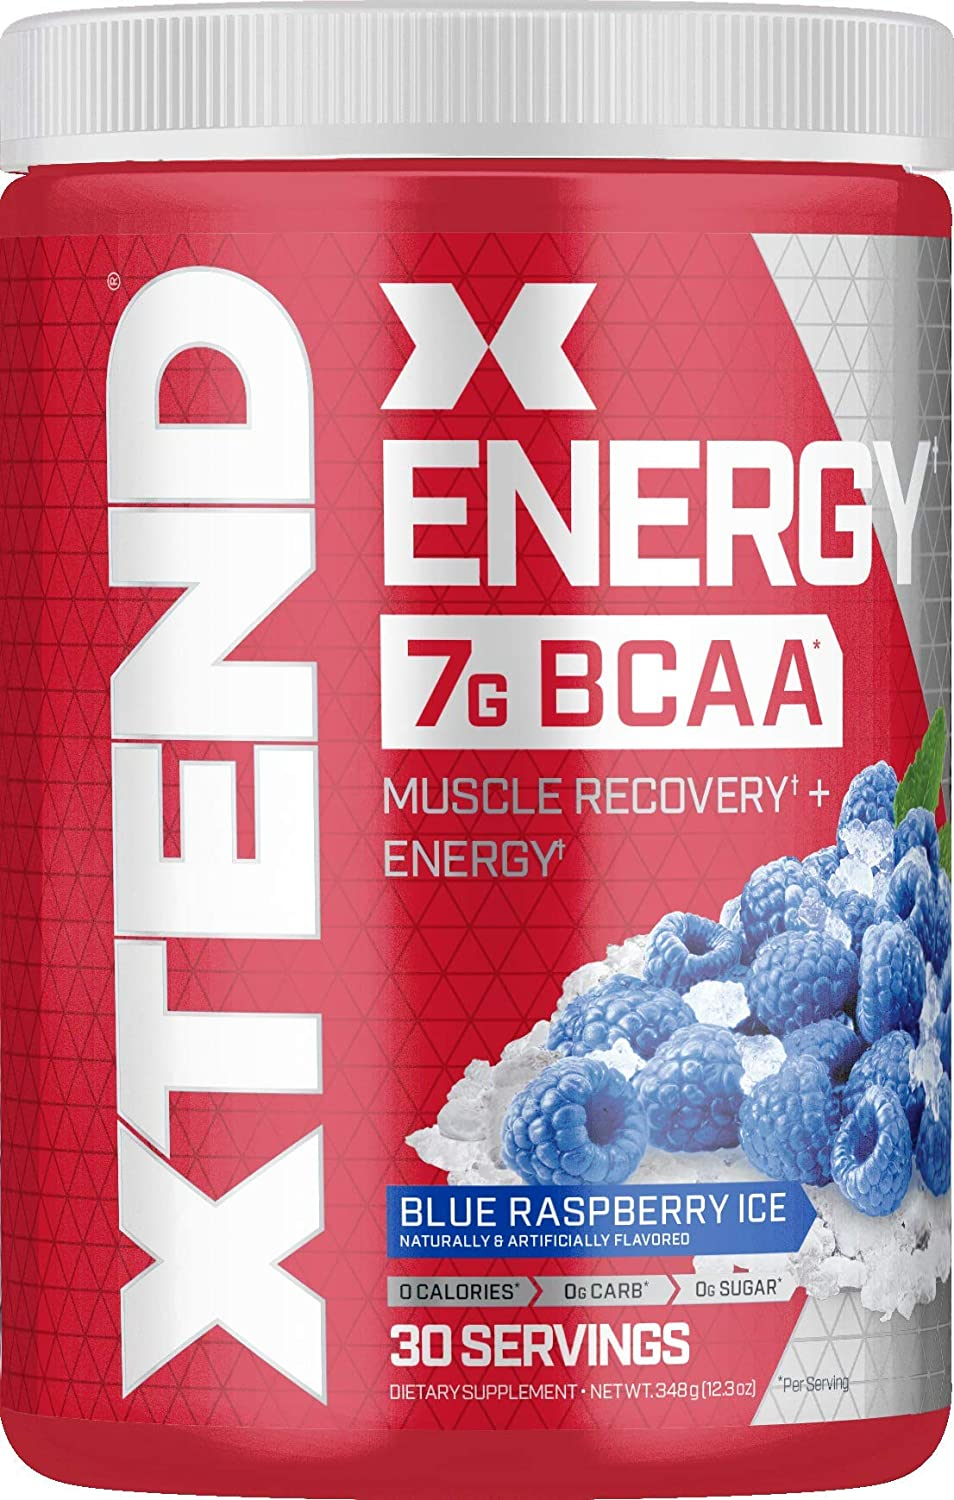 XTEND Energy BCAA Powder Blue Raspberry | 125mg Caffeine + Sugar Free Pre Workout Muscle Recovery Drink with Amino Acids | 7g BCAAs for Men & Women | 30 Servings